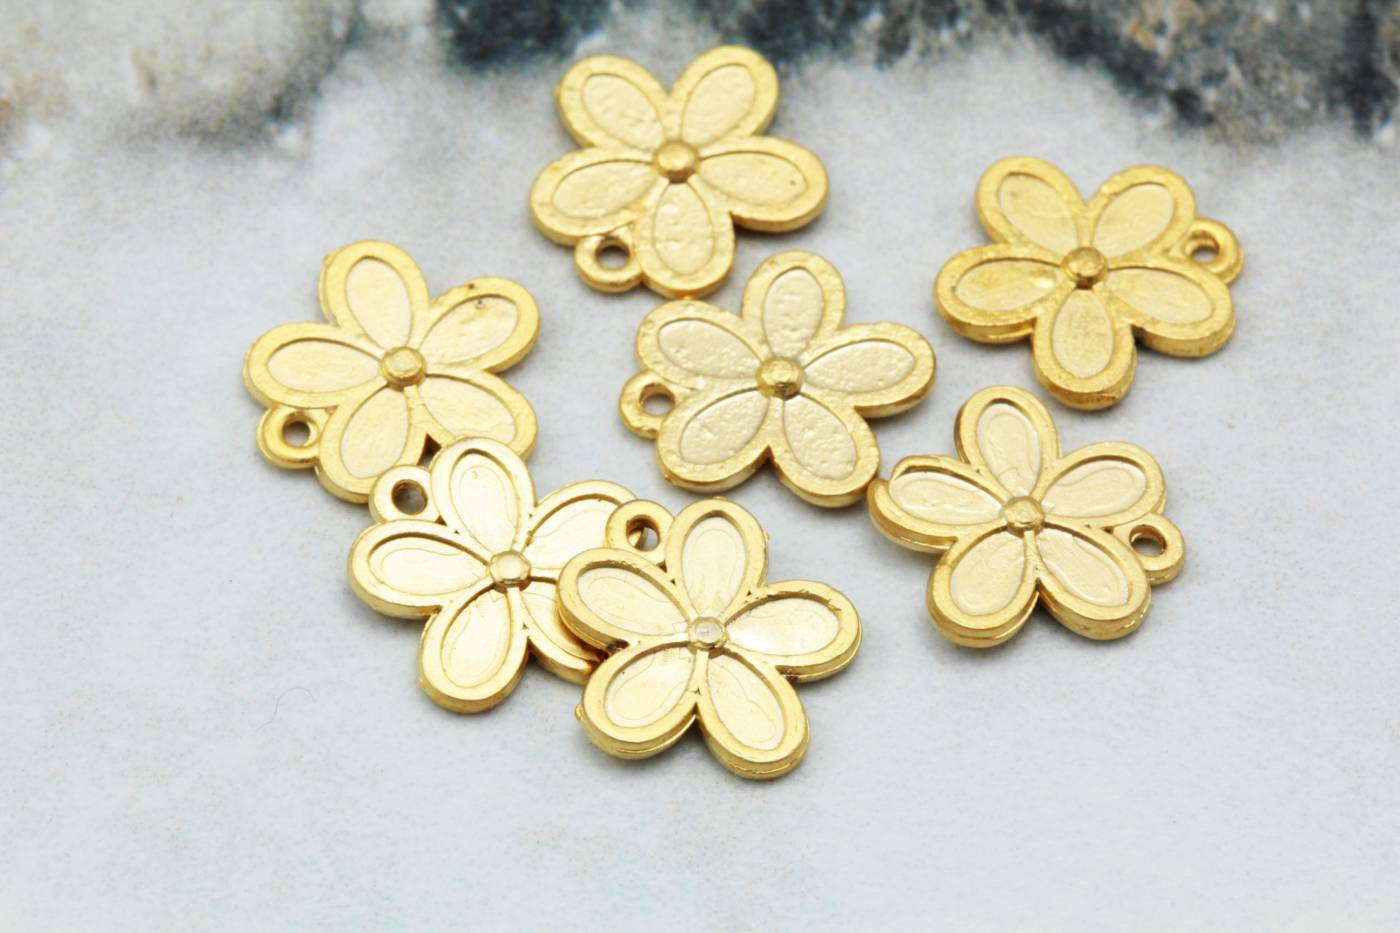 gold-plated-daisy-jewelry-pendant-charms.jpg